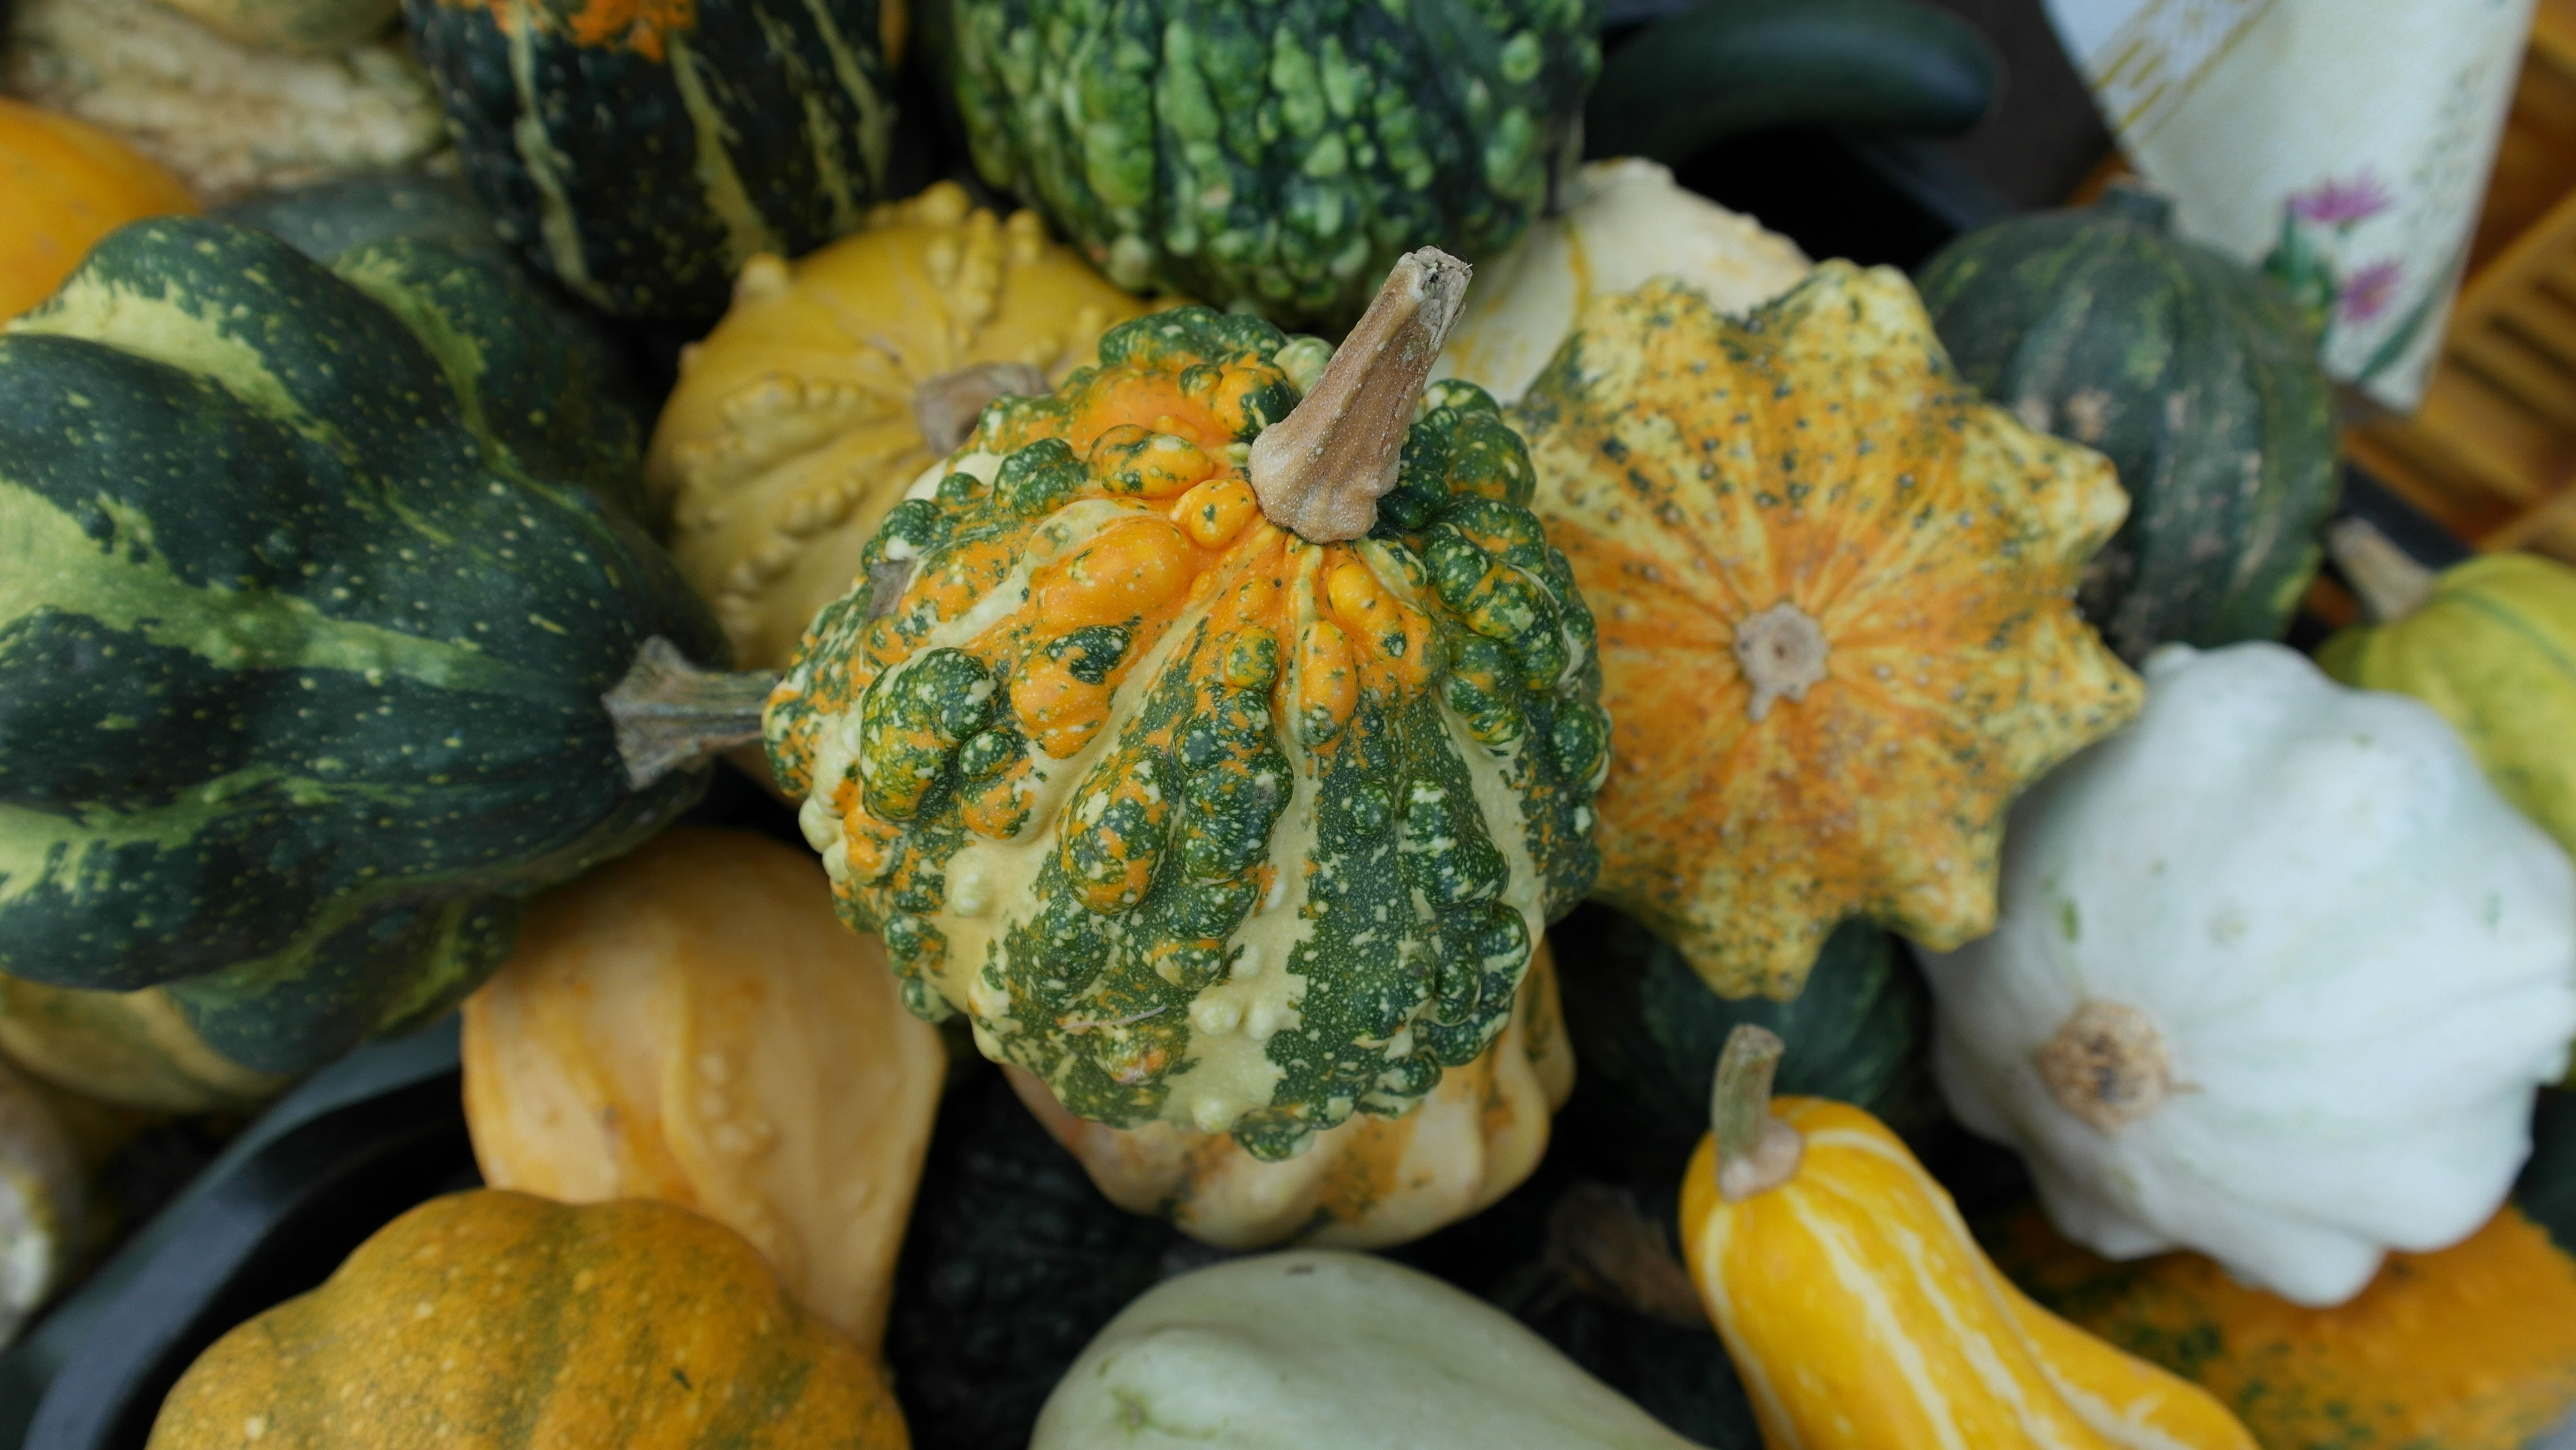 Free stock photo of vegetables, yellow, autumn, colorful